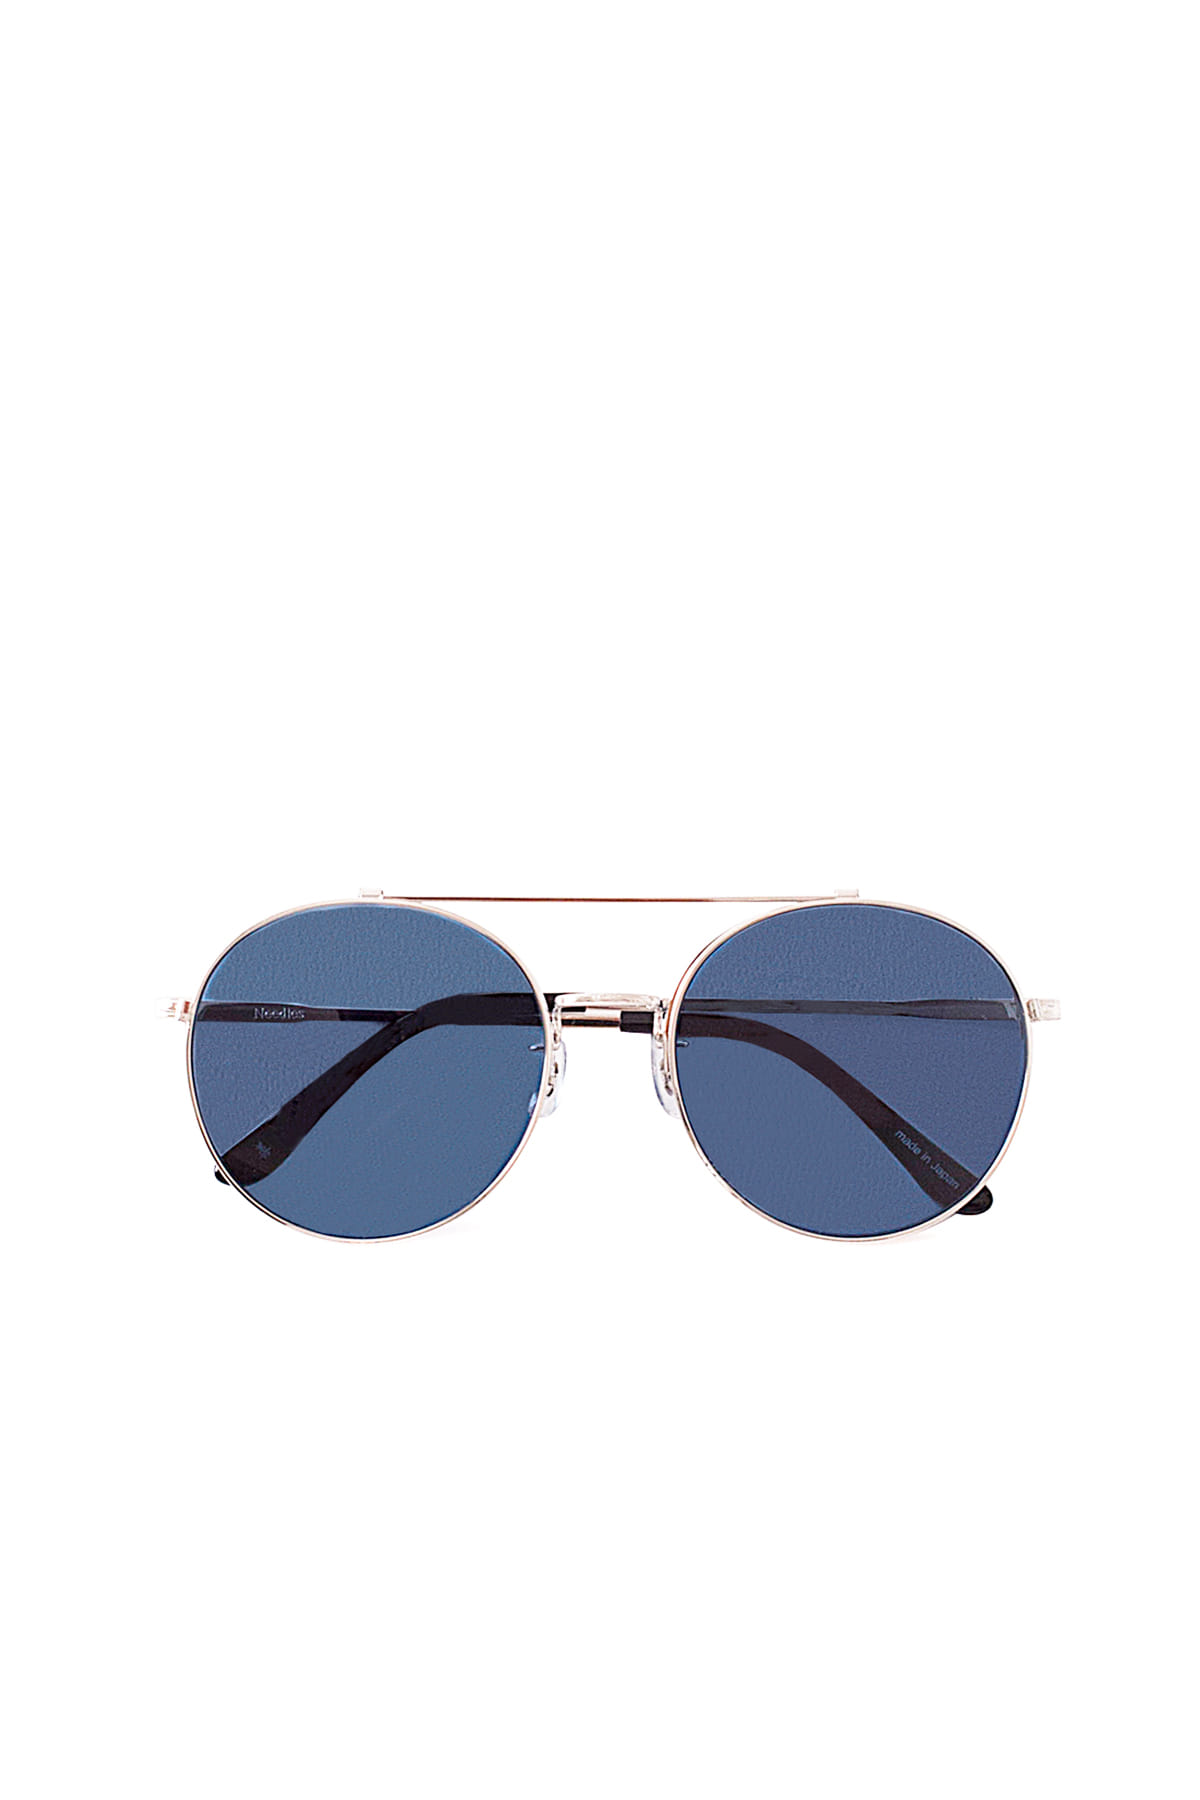 NEEDLES : Sean Sunglass (Silver /Navy)